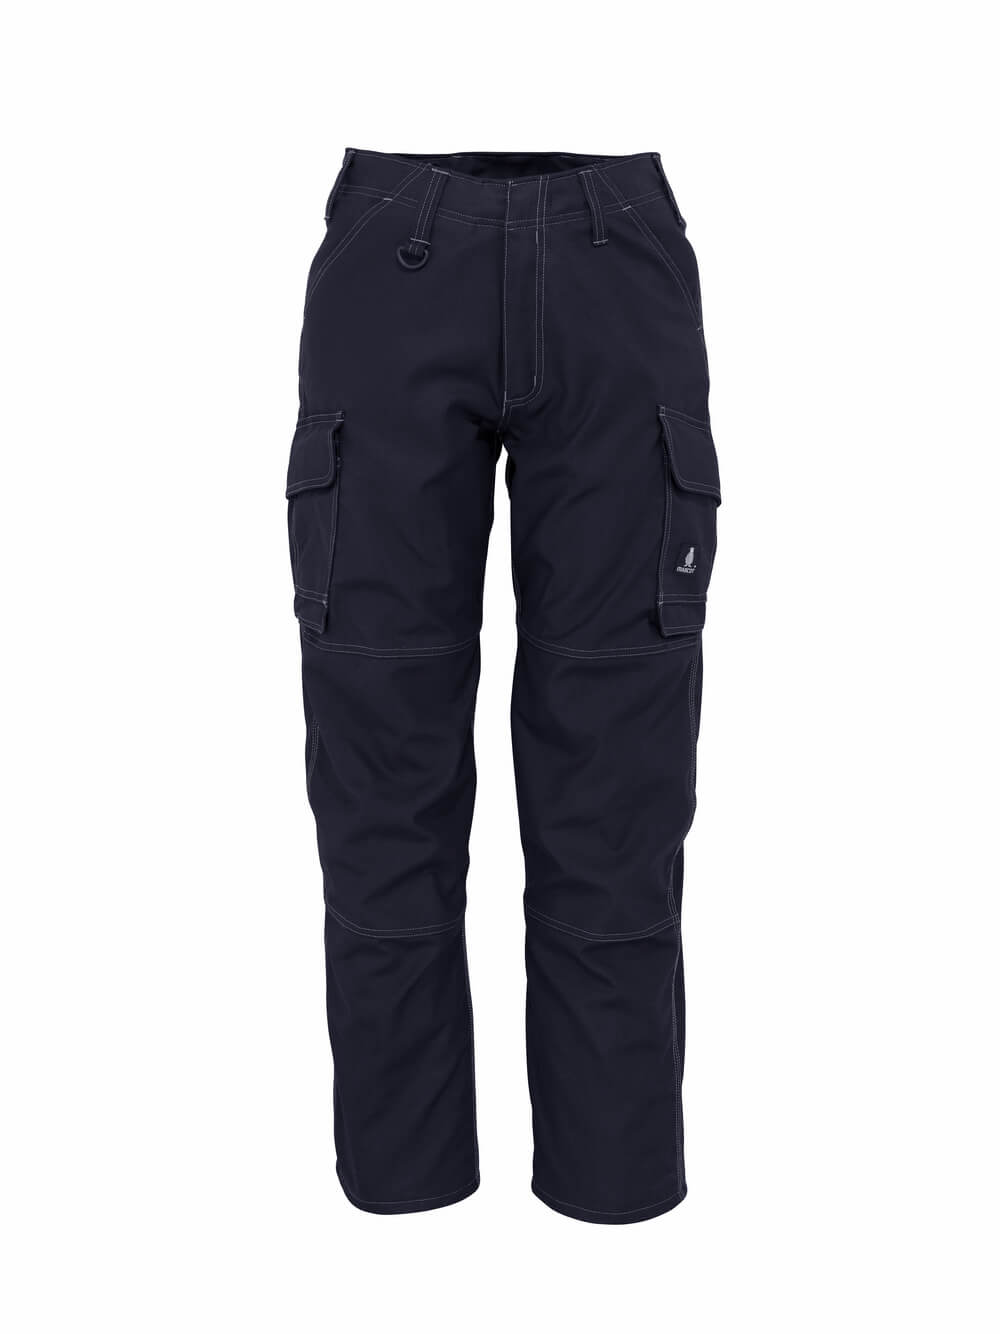 10279-154-010 Pants with thigh pockets - dark navy